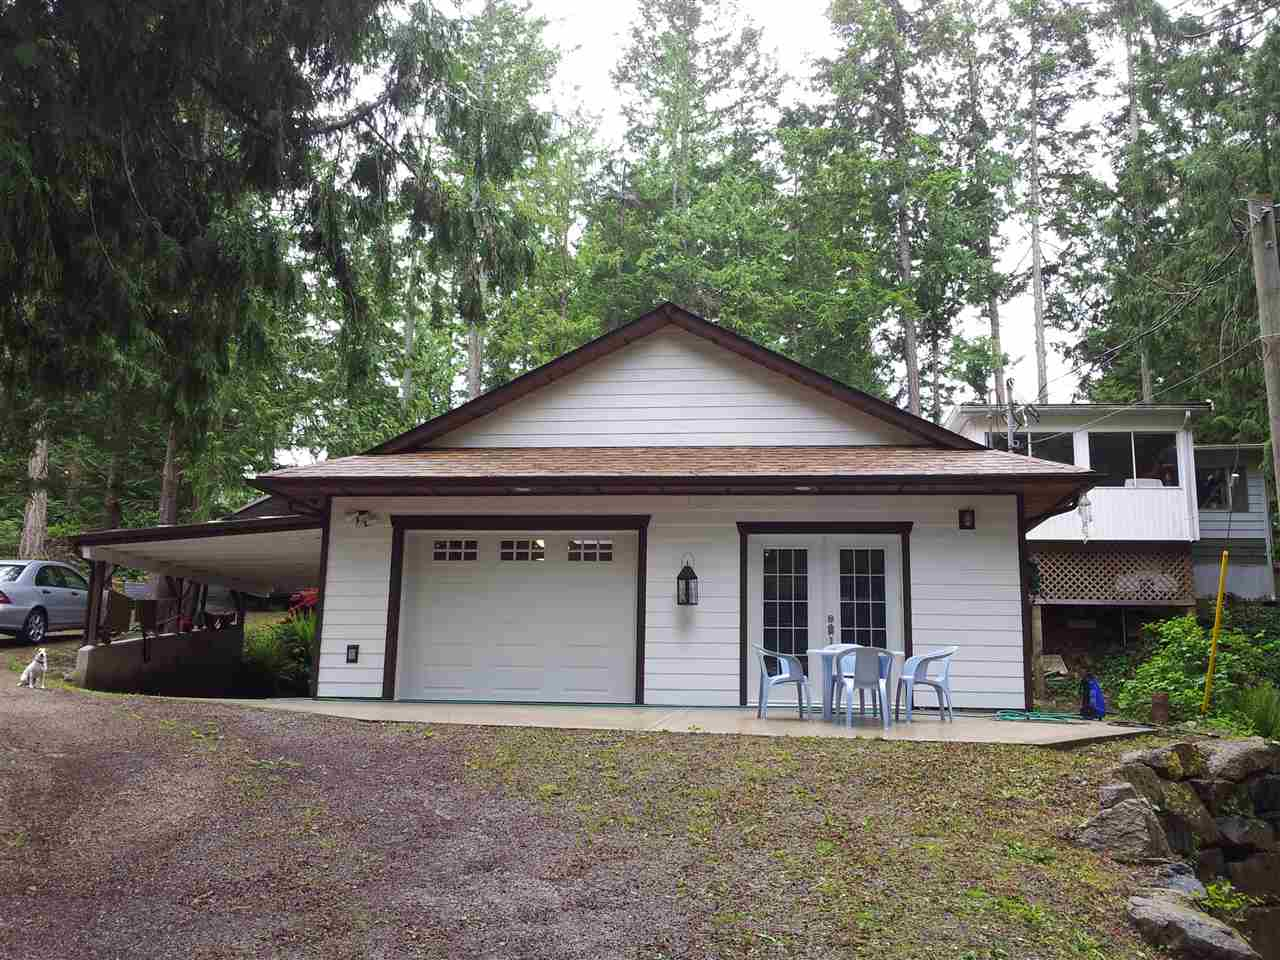 This 2 bedroom, 2 bath manufactured home includes vaulted ceilings, large open living room, dining and family rooms. There is a big deck on the front of the home with an enclosed hot tub room, and covered porch on the back. The new 30x30 garage and carport includes a studio. This prime cul-de-sac location is a 10 for neighbourhood, and the lot is beautiful with huge mature cedars. There is an RV parking spot in addition to the 2 covered parking spots. The beach is only 1.5 blocks away as well as John Henry's marina and LaVernes bar and Grilll and 4 lakes close by for swimming or fishing.